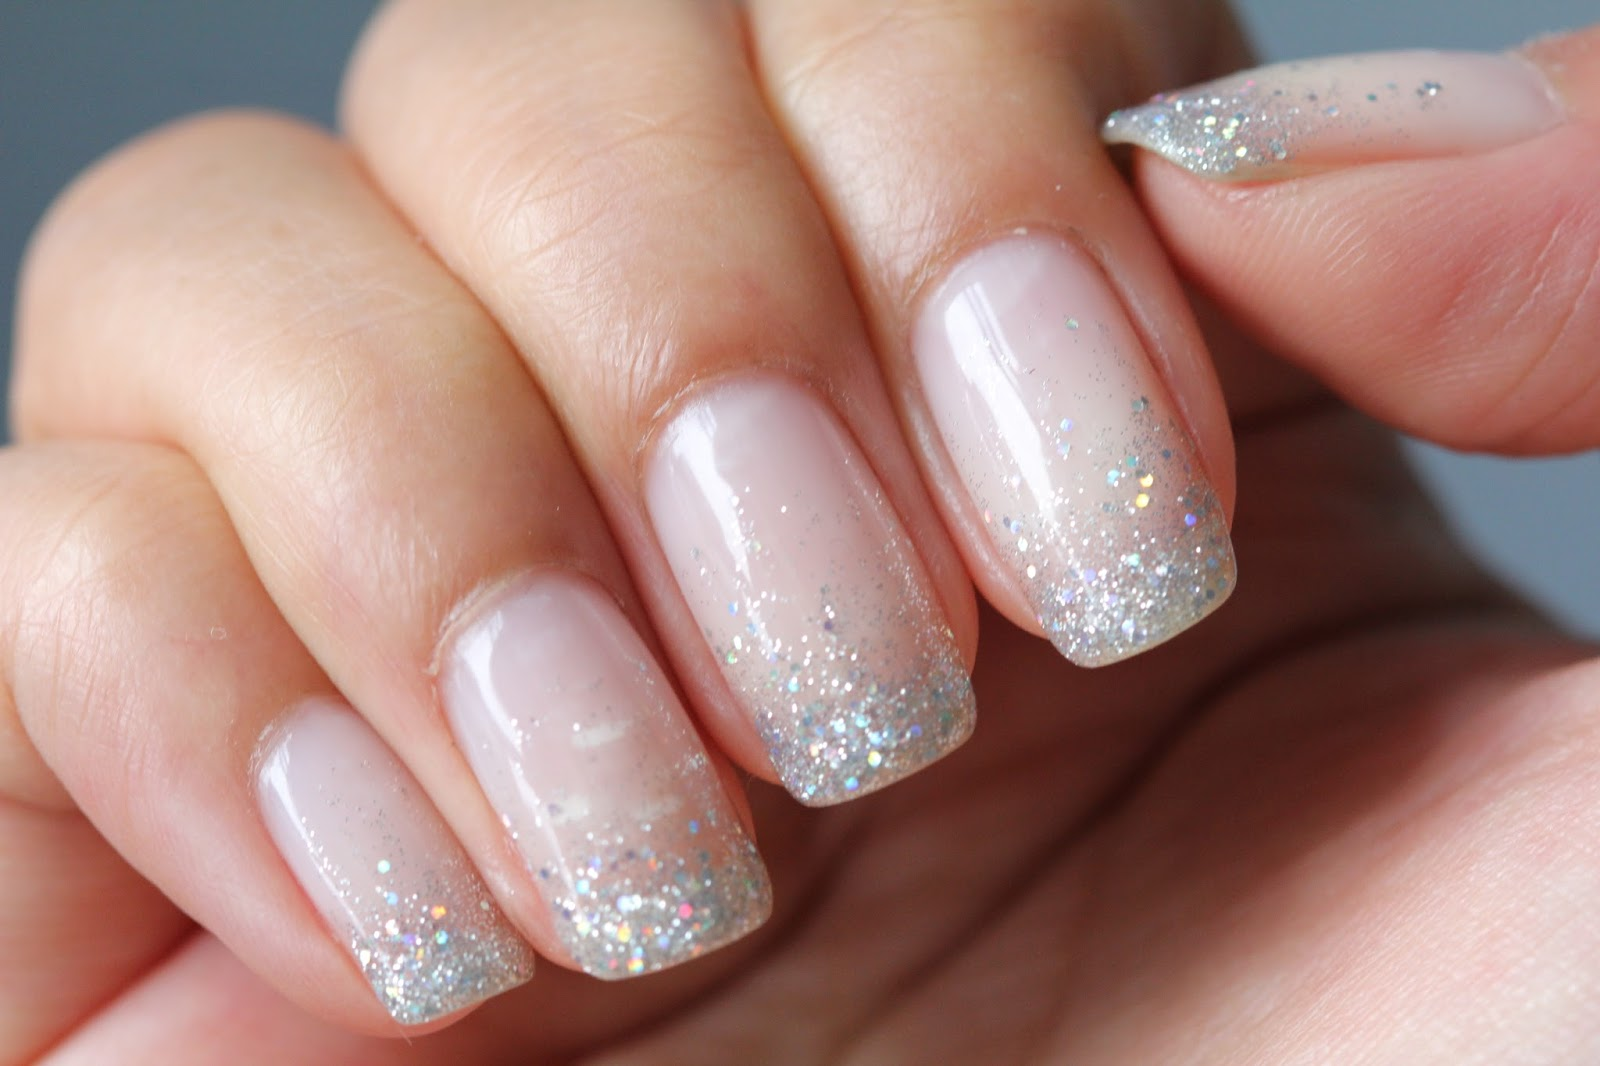 dsk steph s nails glitter waterfall shellac nails